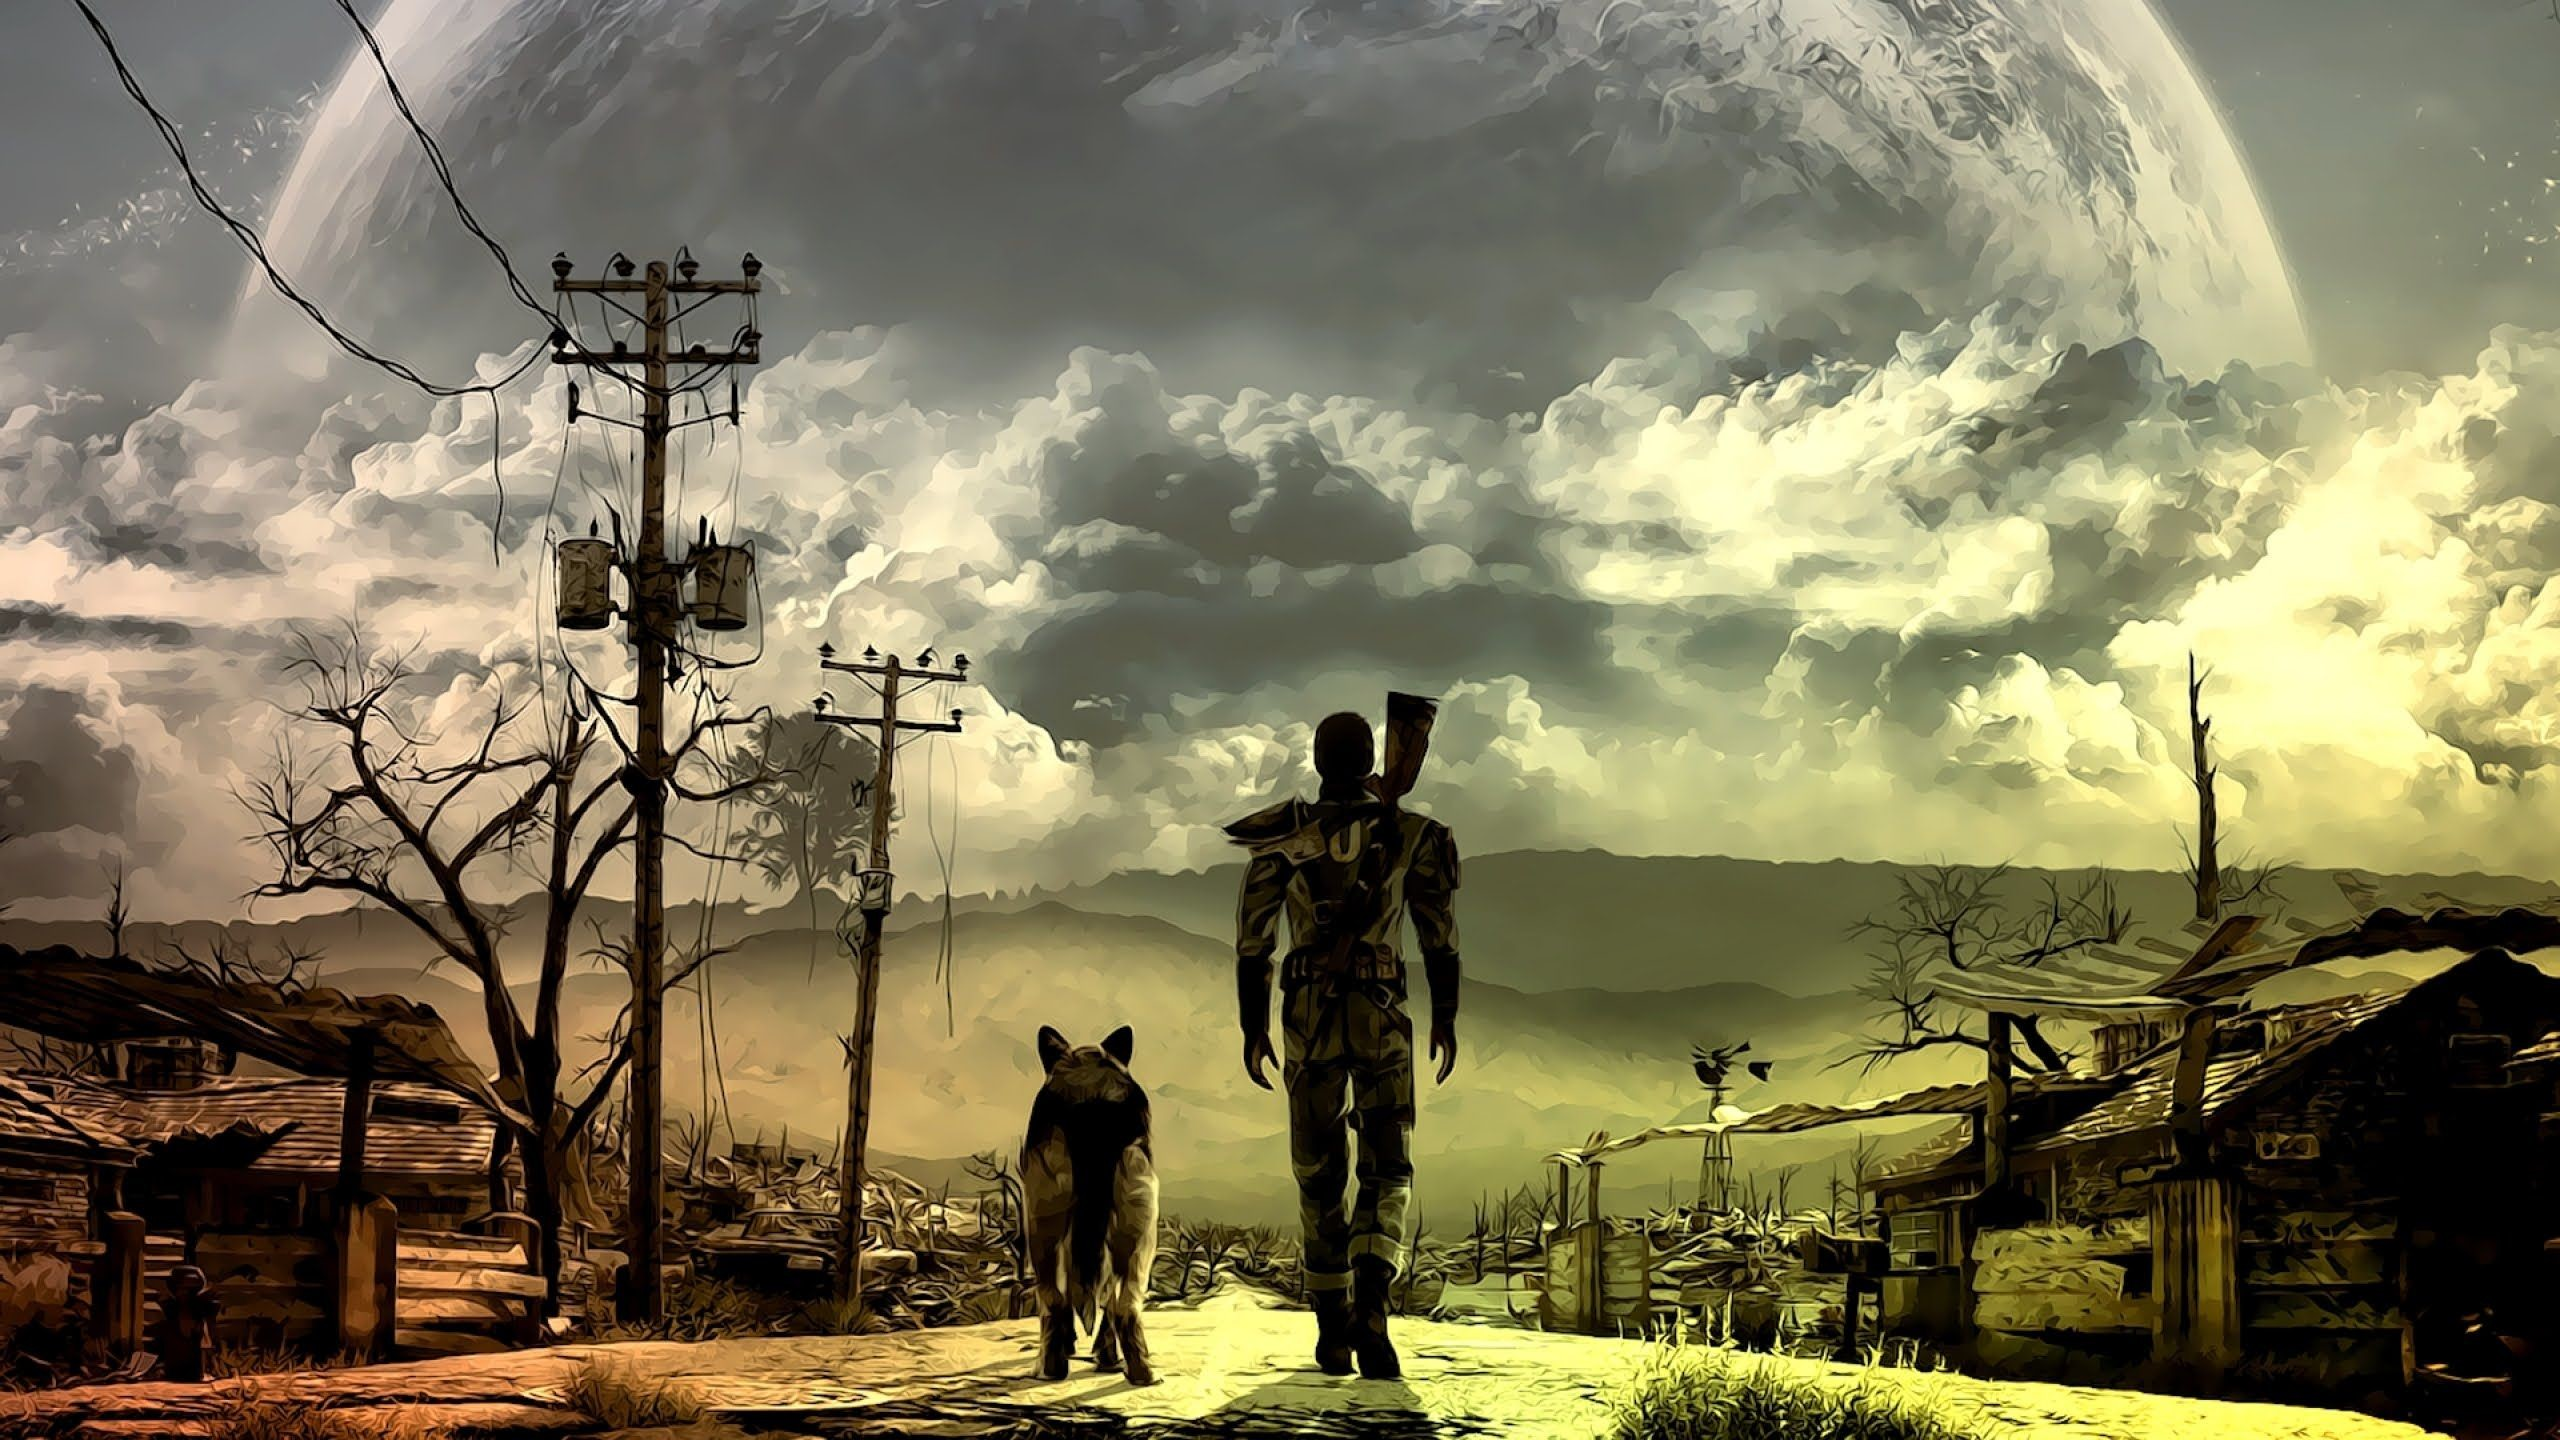 2560x1440 Fallout 4 Wallpapers HD Download